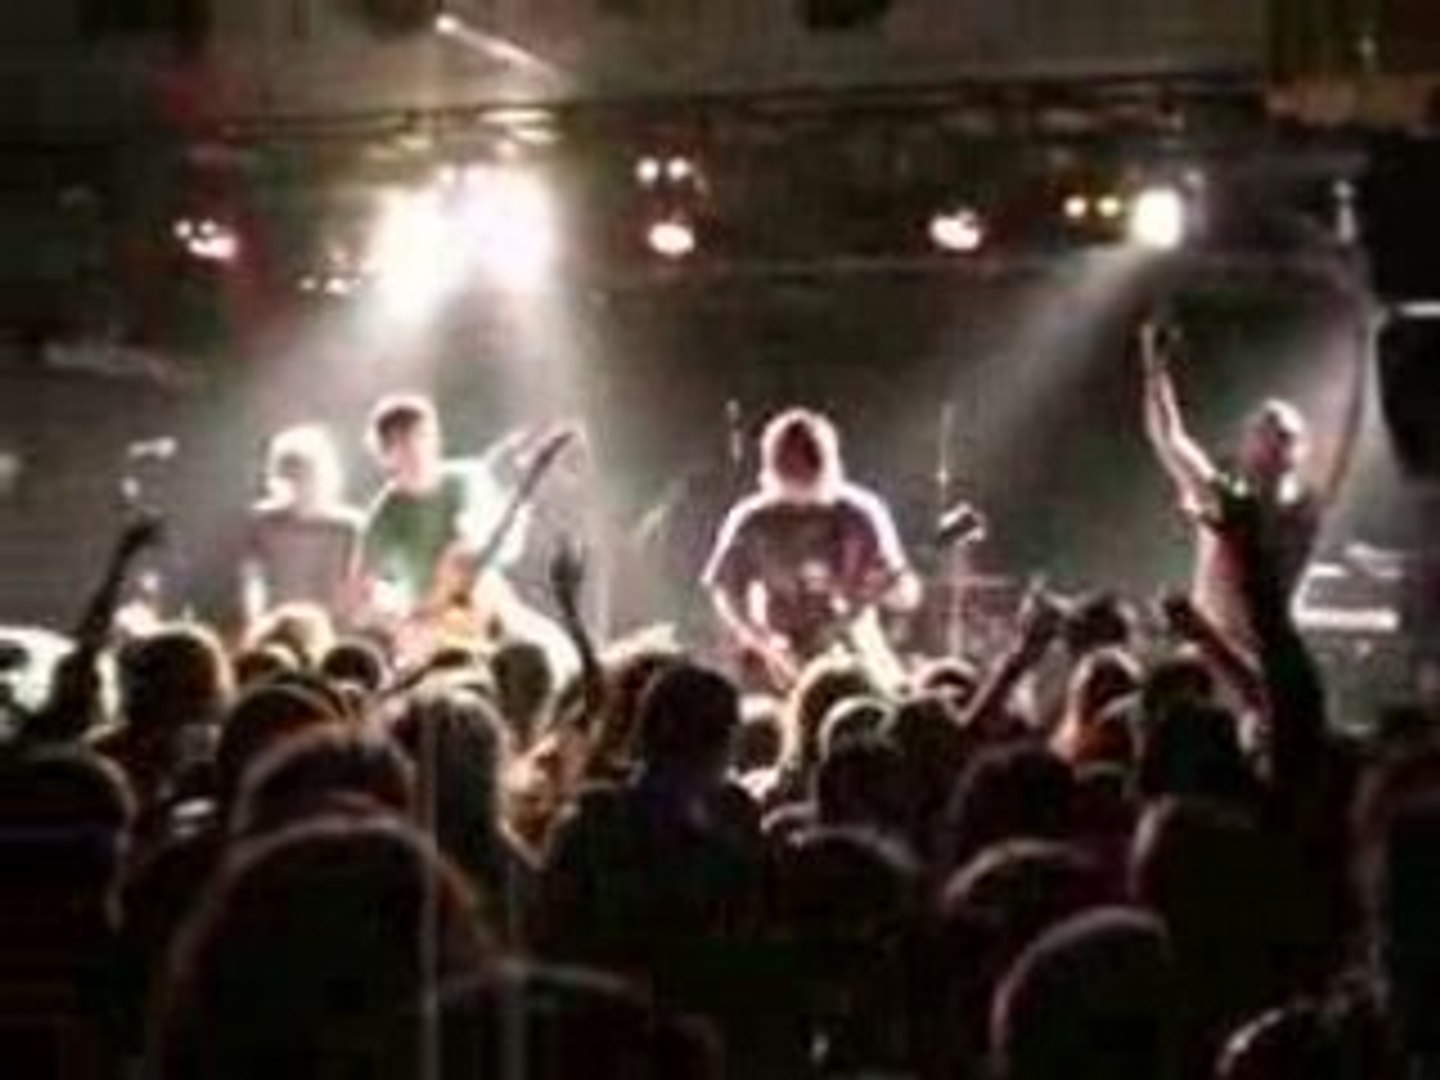 August Burns Red - Back Burner Live @ La Boule Noire